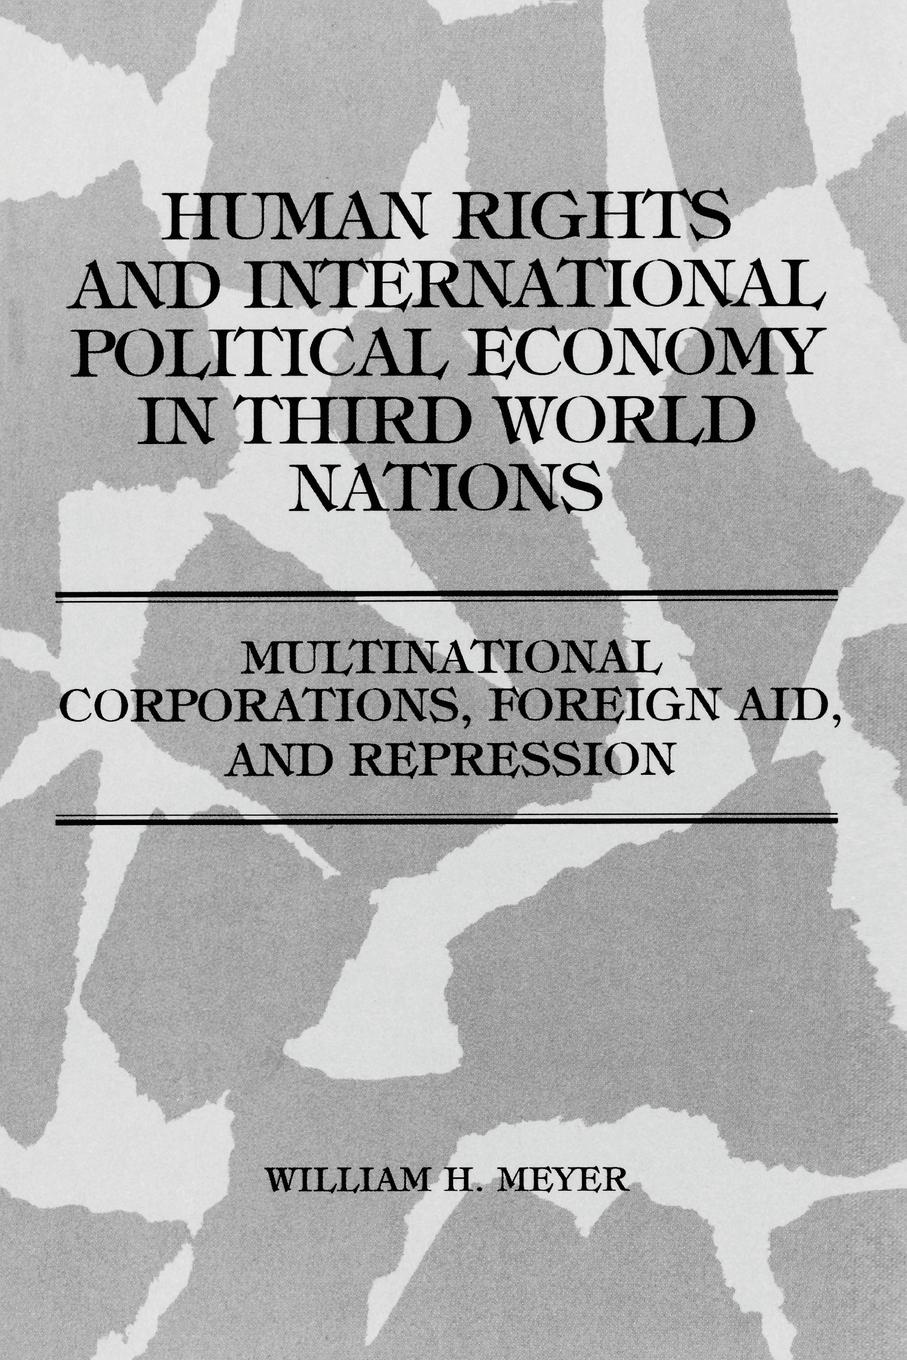 William Meyer Human Rights and International Political Economy in Third World Nations. Multinational Corporations, Foreign Aid, and Repression the rationale behind foreign aid